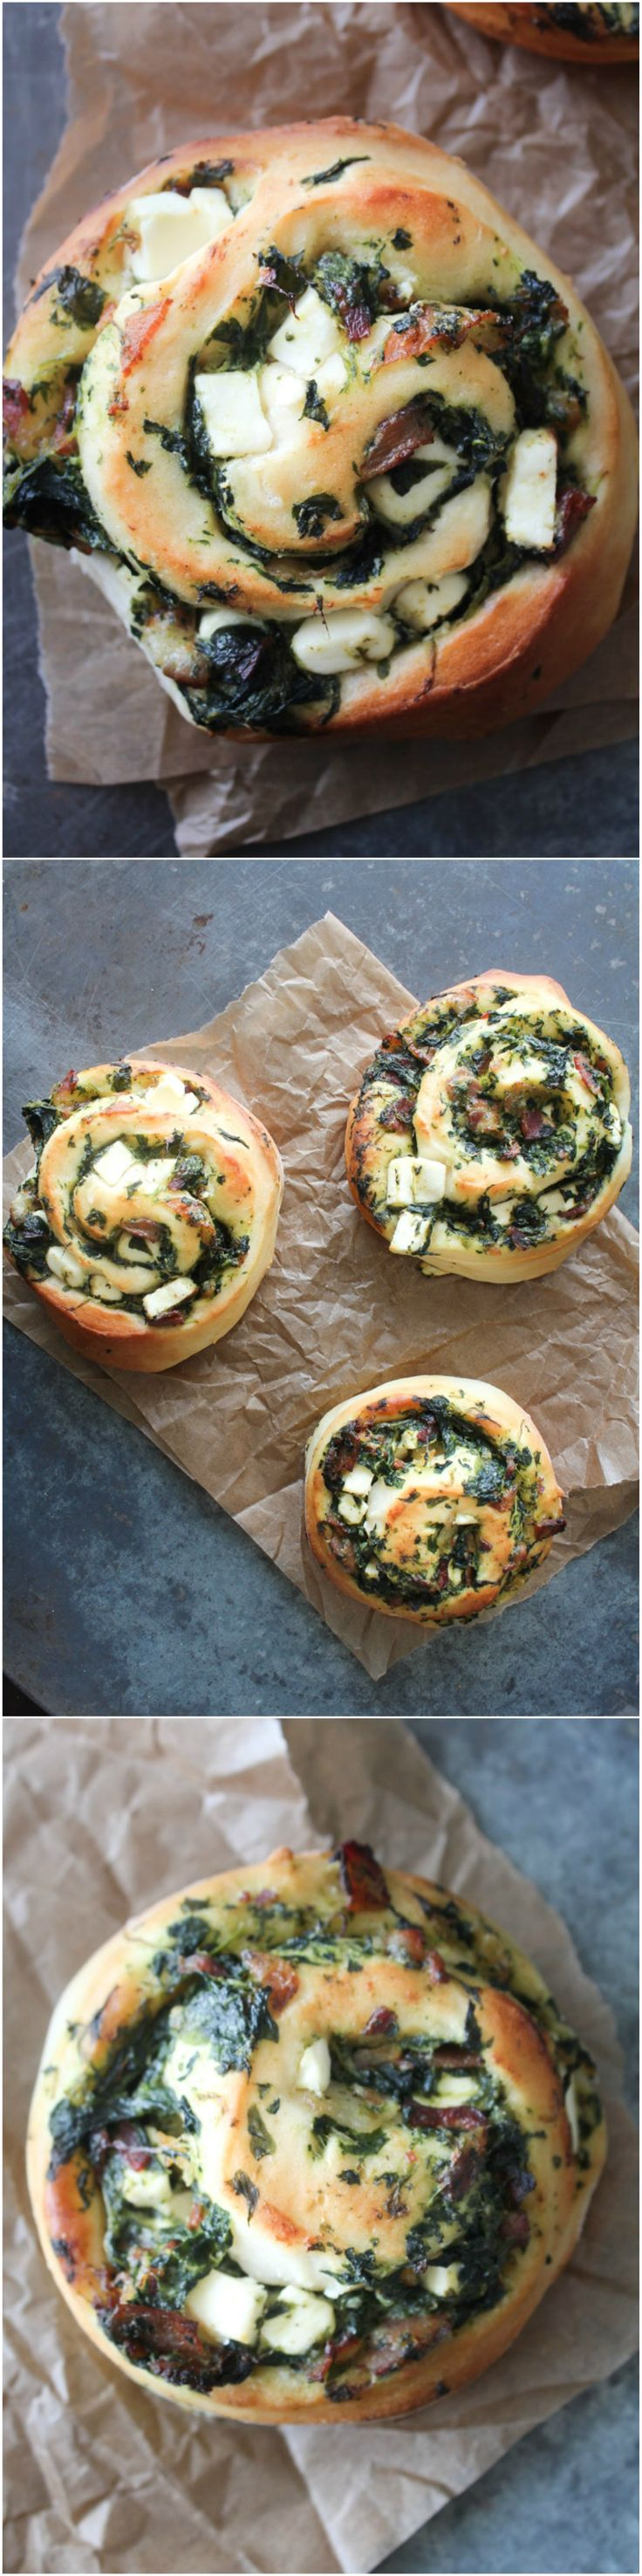 Spinach, feta cheese and bacon rolls - homemade bread - homemade rolls - bacon bread - spinach bread